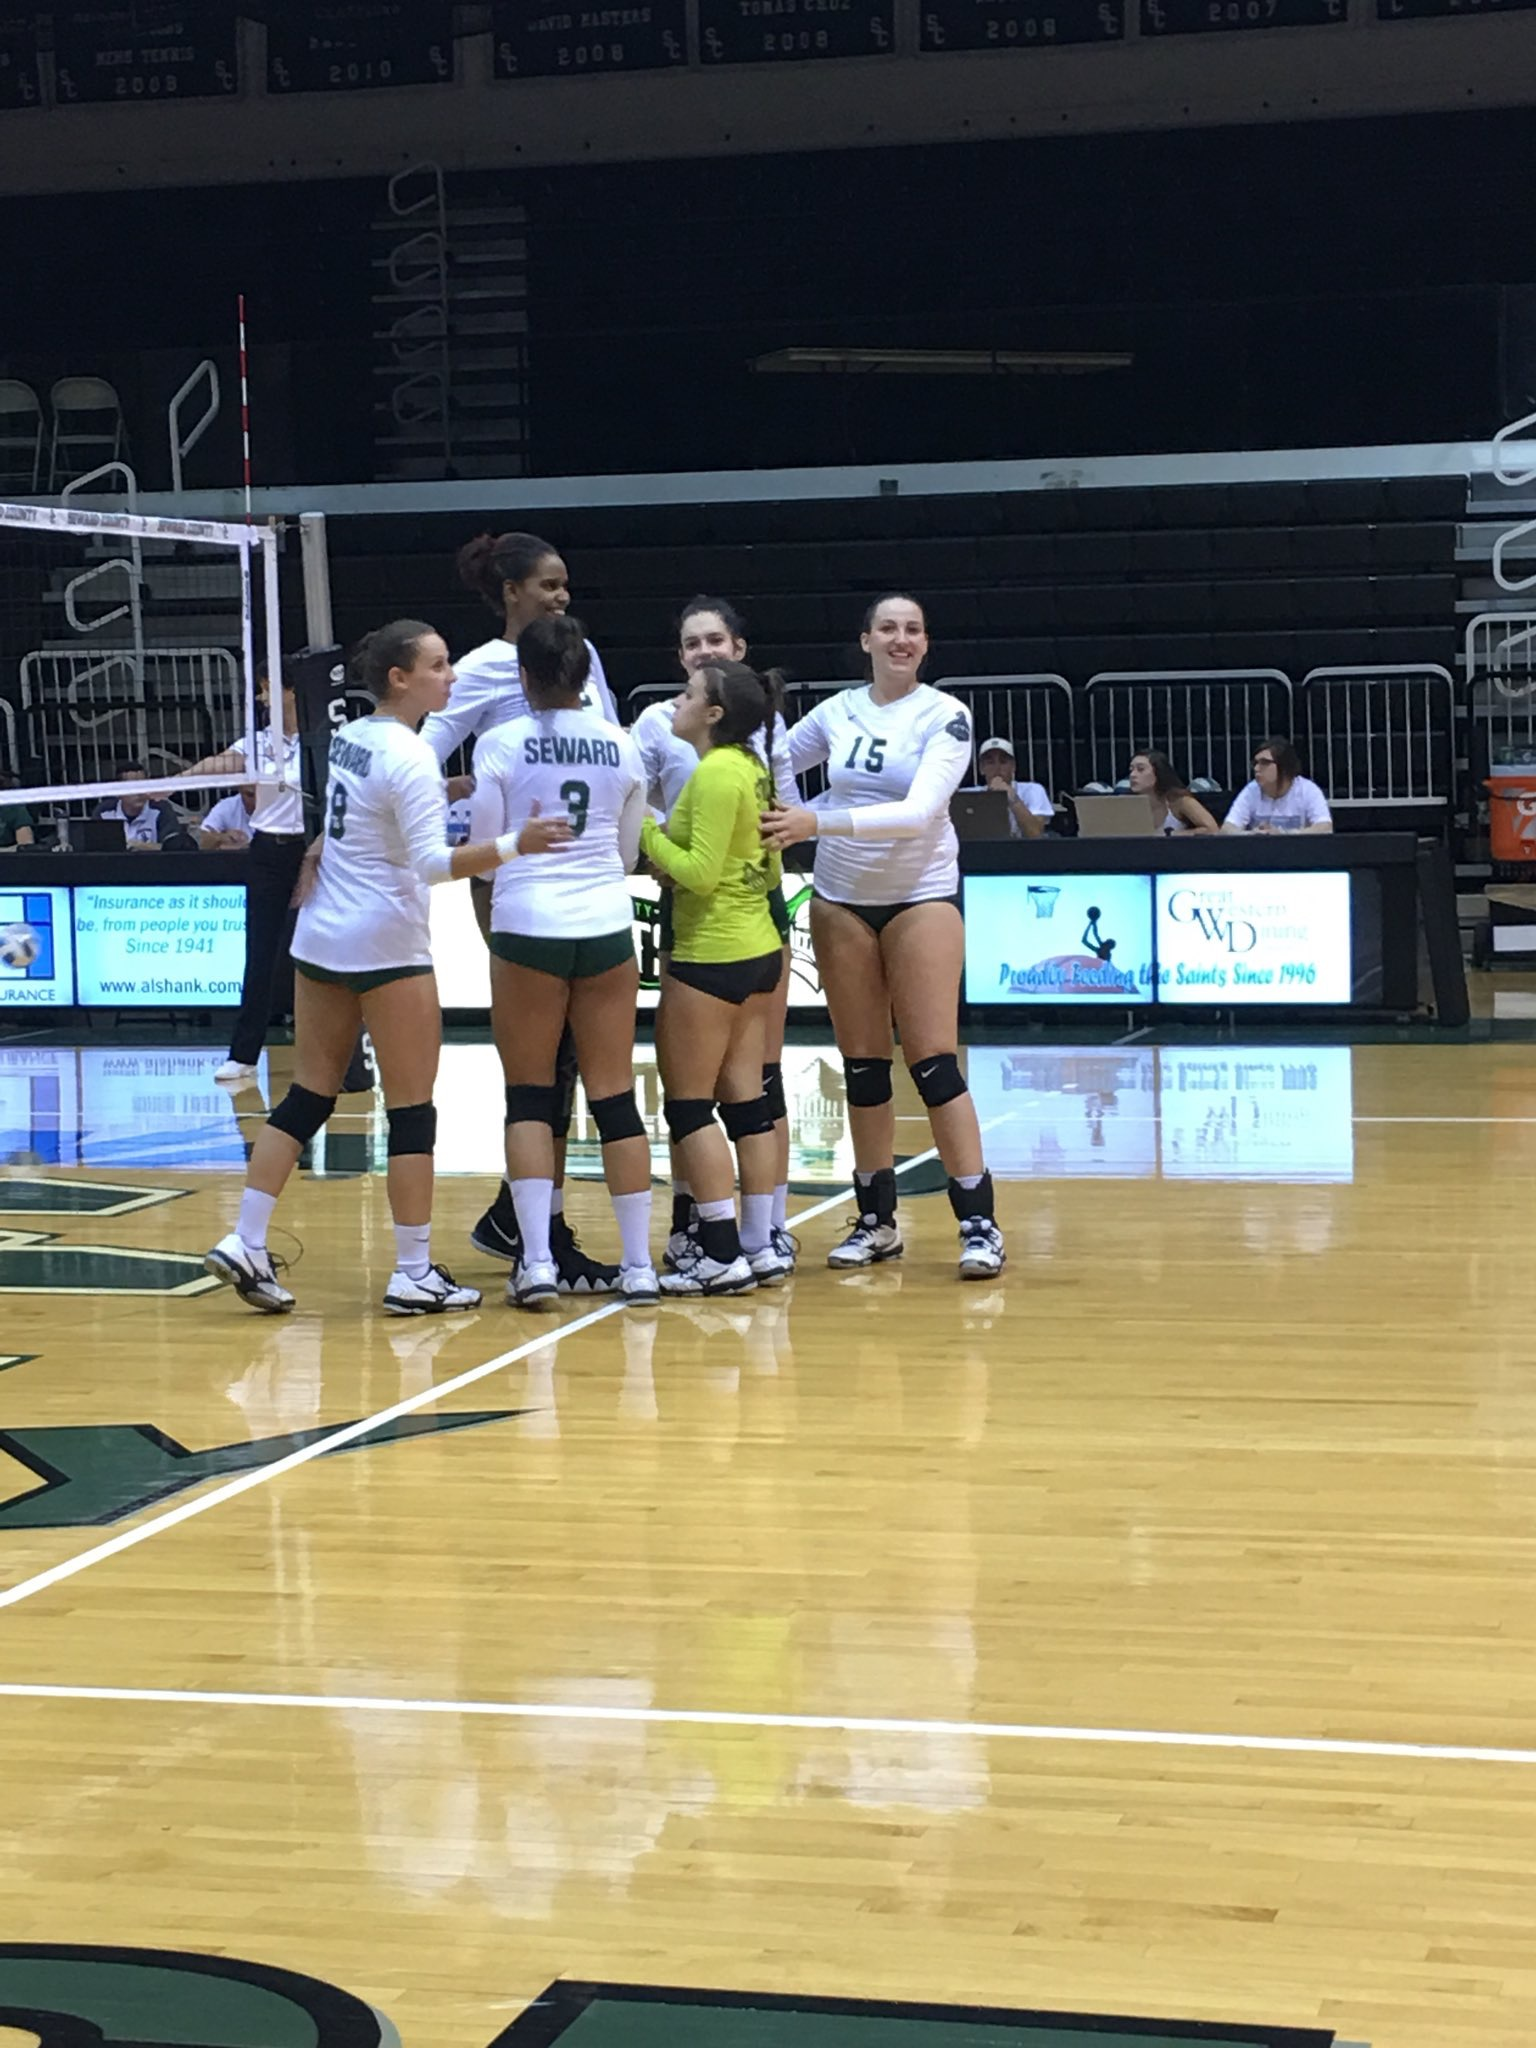 Seward Moves Up to 6th in NJCAA Rankings